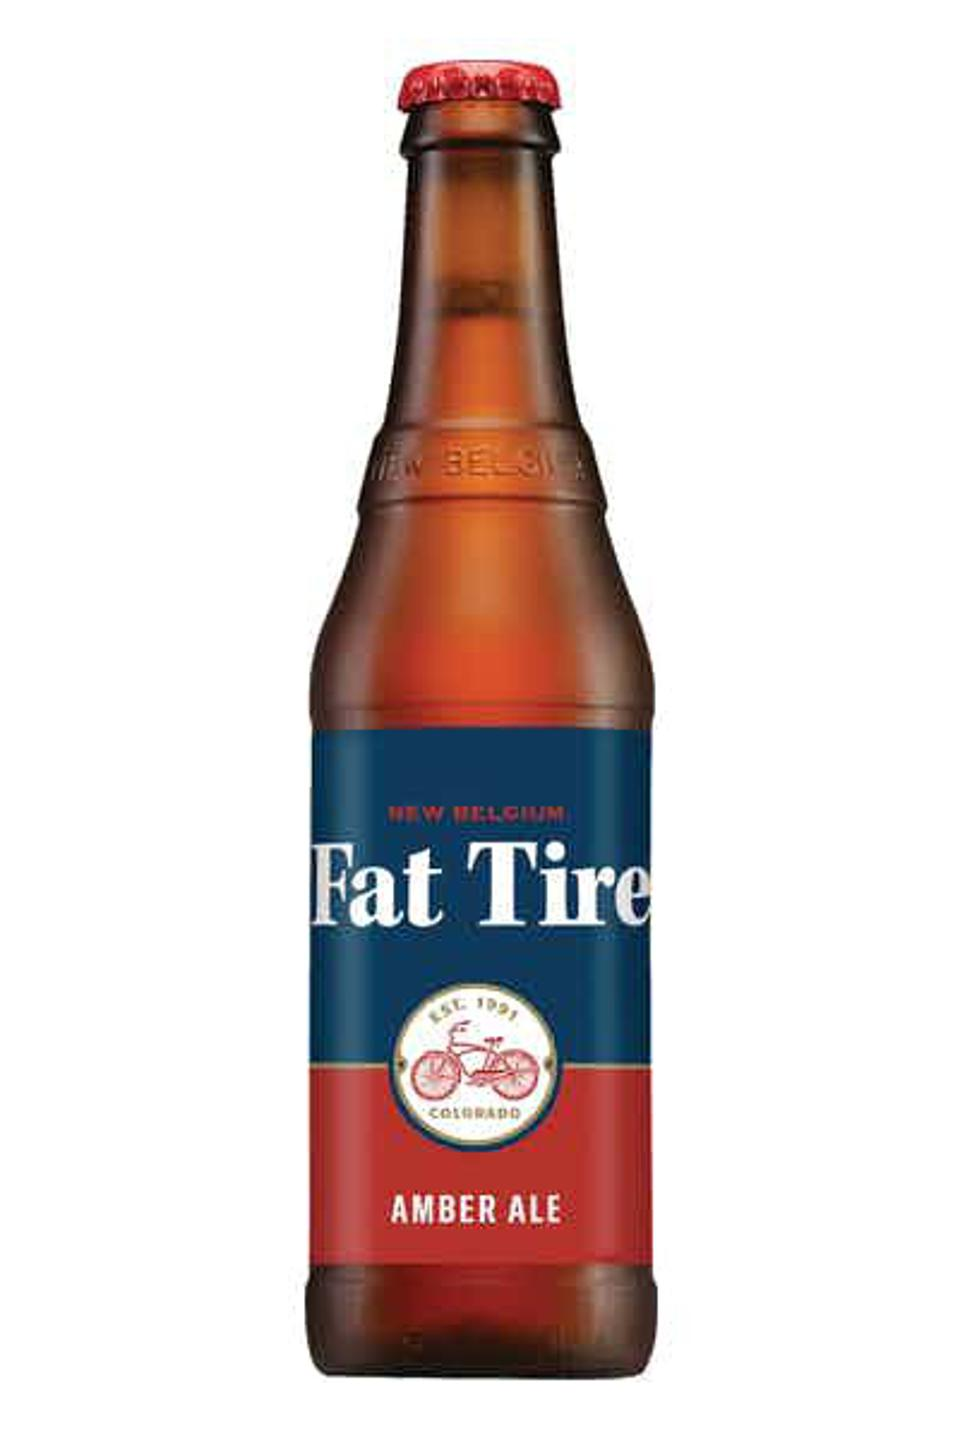 Fat Tire Ale from New Belgium Brewing Company.